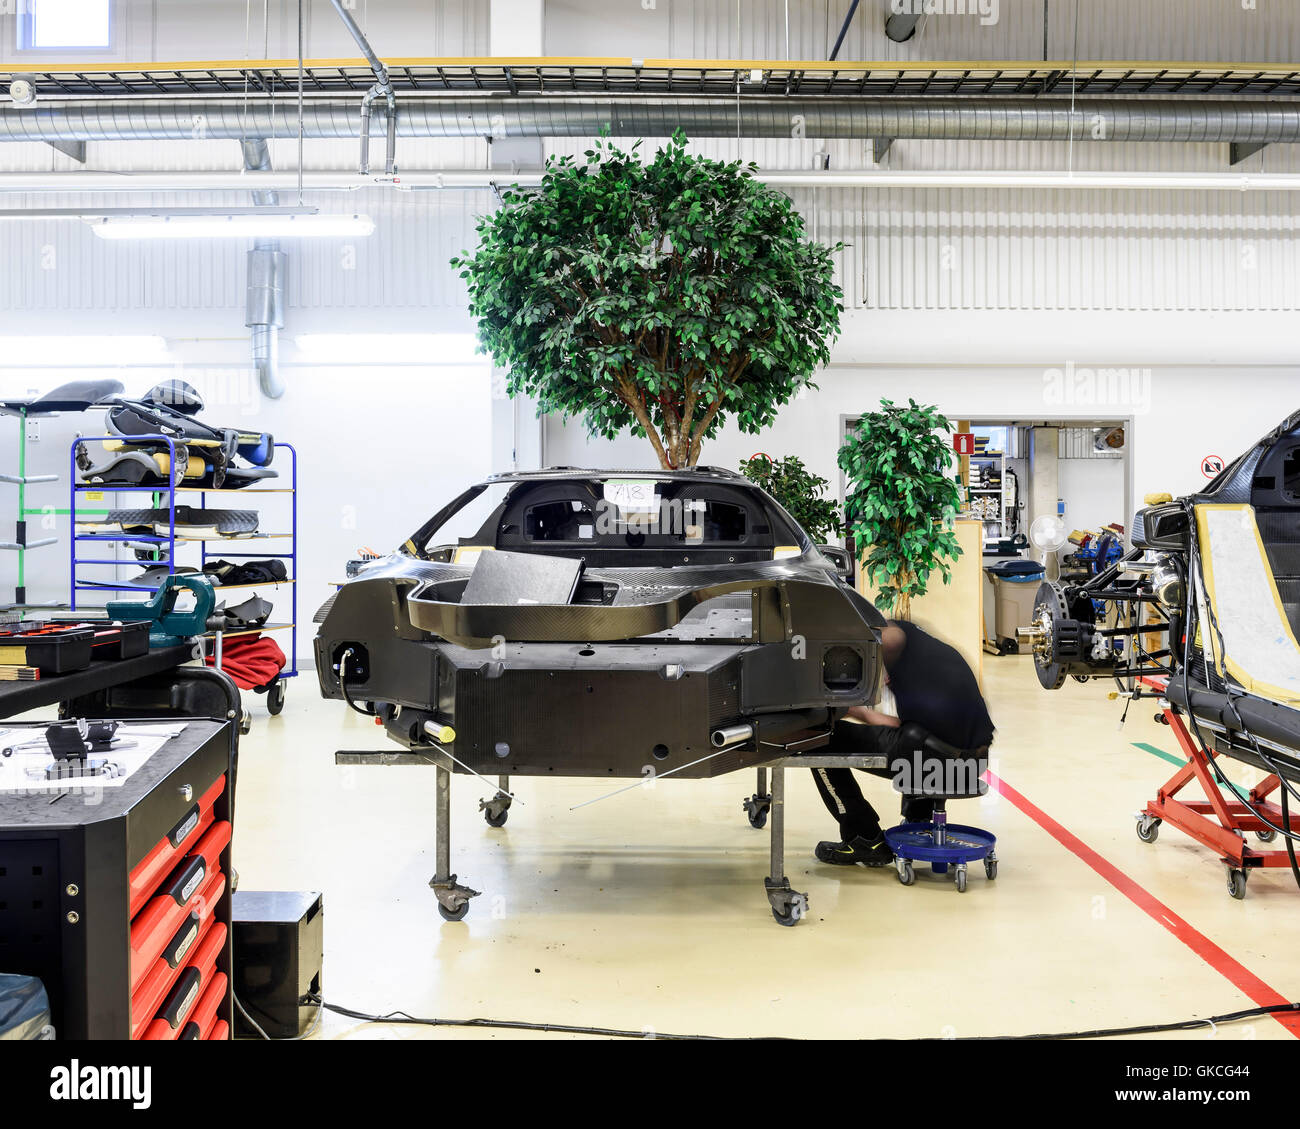 A car on the production line. Koenigsegg Supercar Factory, Angelholm, Sweden. Architect: -, 2016. Stock Photo